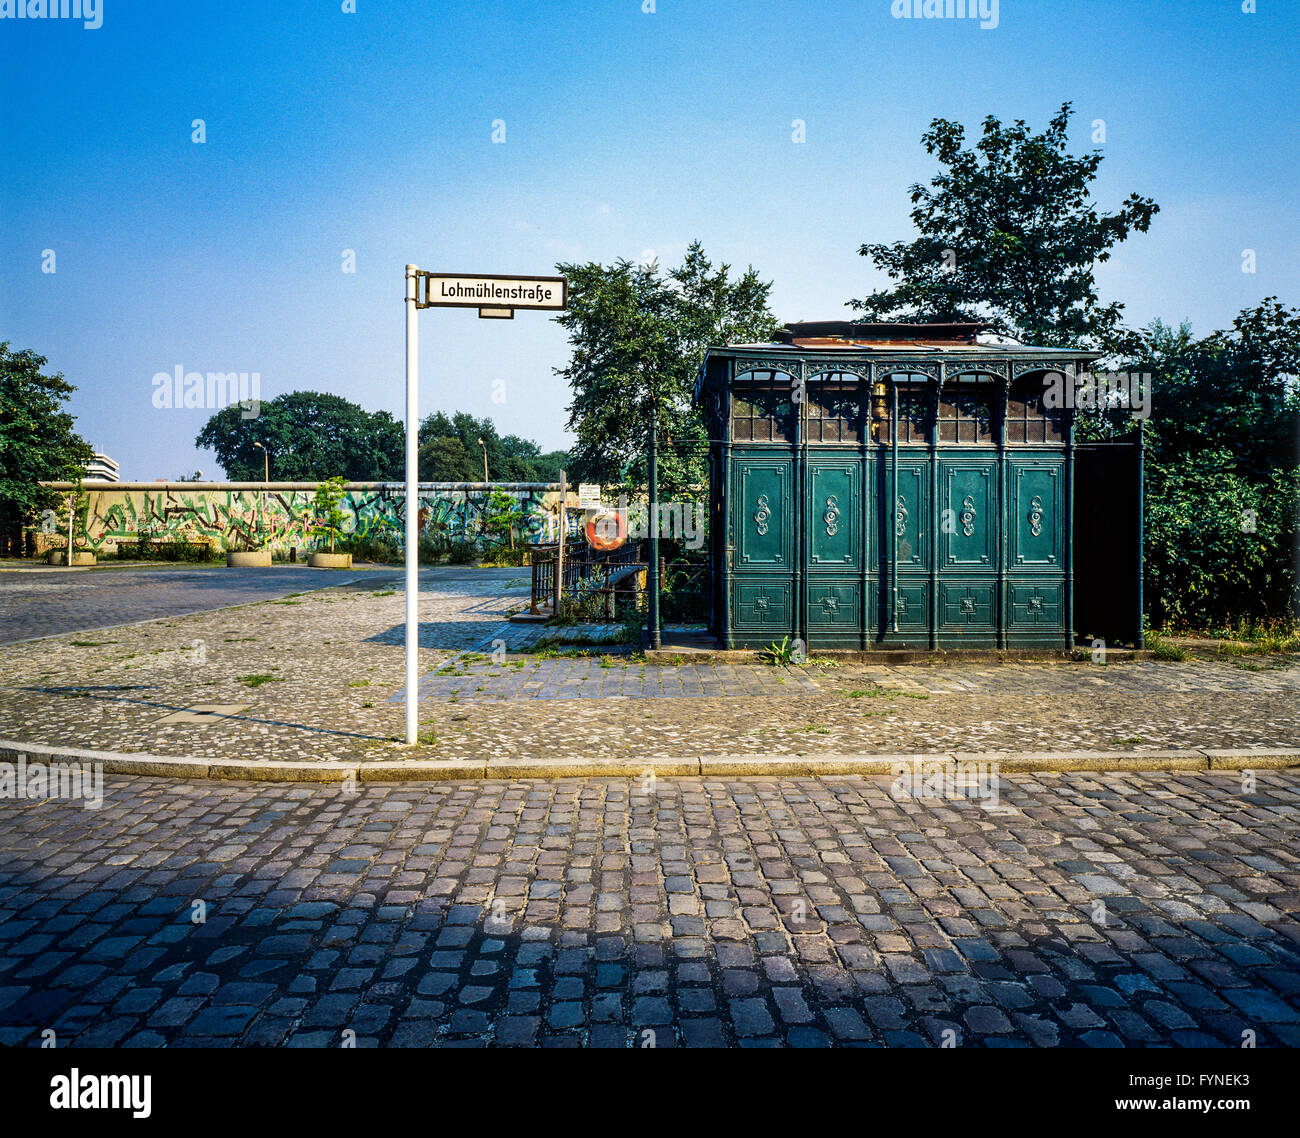 August 1986, ancient public toilet 1899, Berlin Wall graffitis, Lohmühlenstrasse street sign, Treptow, West - Stock Image